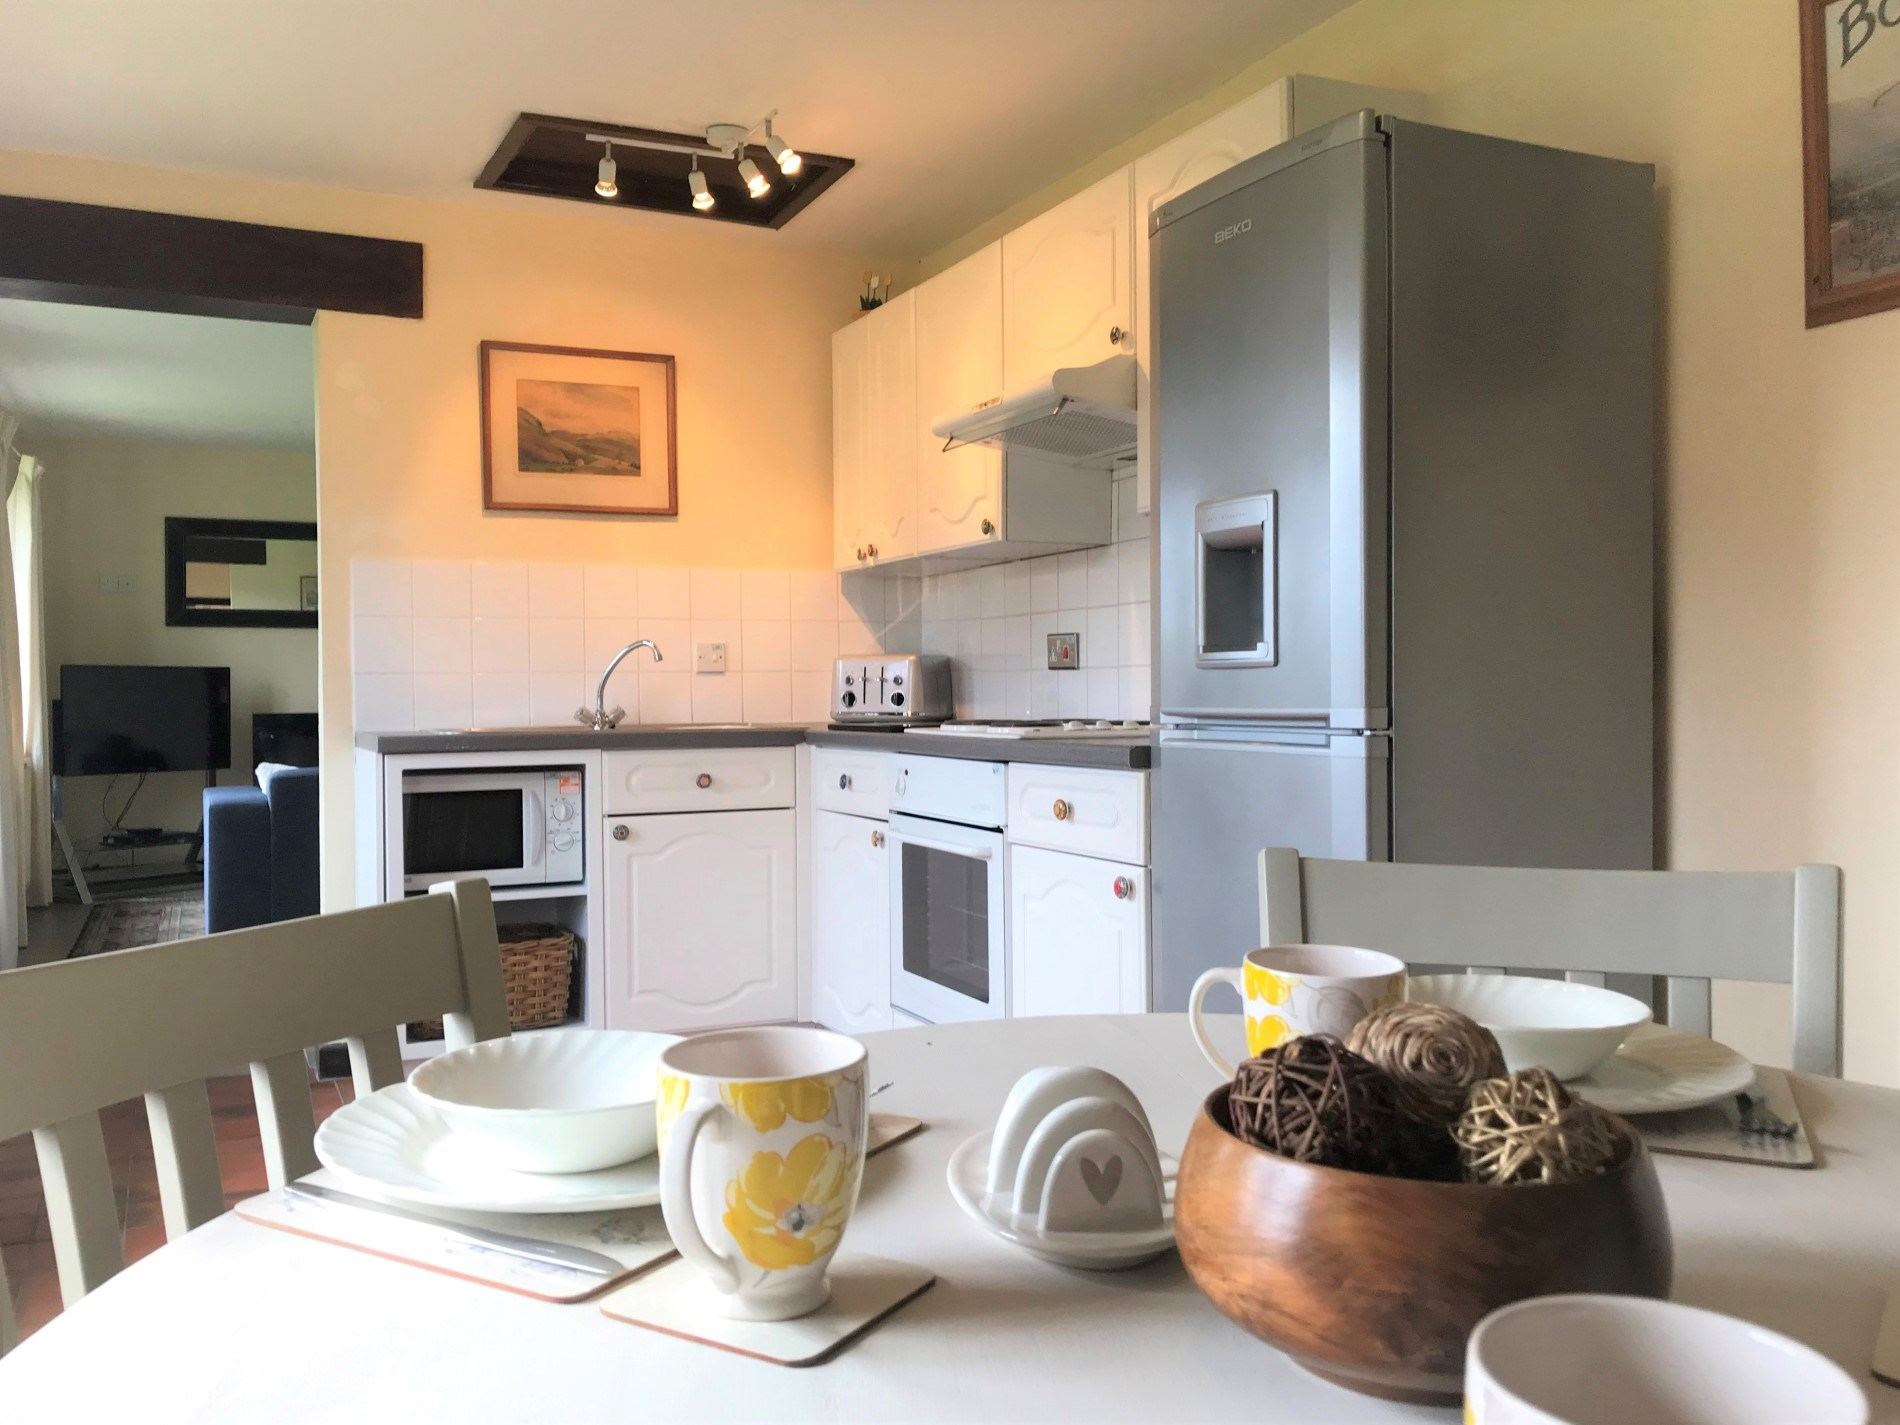 2 Bedroom House in Mid Wales, Mid Wales